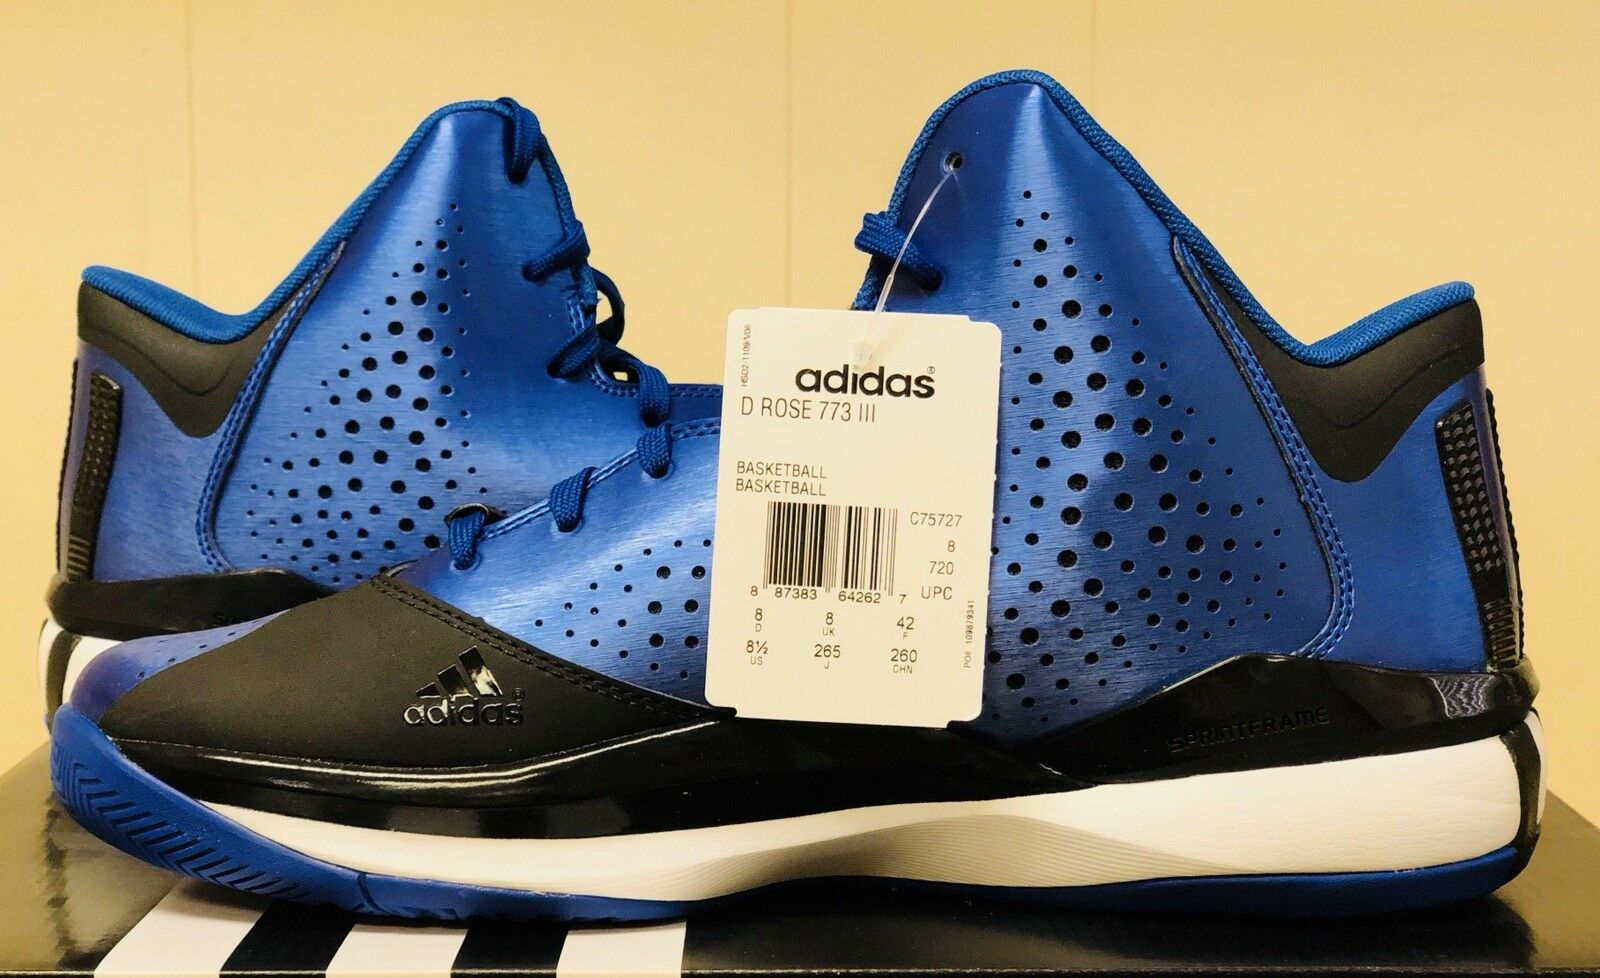 New Adidas Derrick Rose 773 III HIGH Blue Nero Nero Nero Uomo 8.5 C75727 Basketball Shoes 1353f2